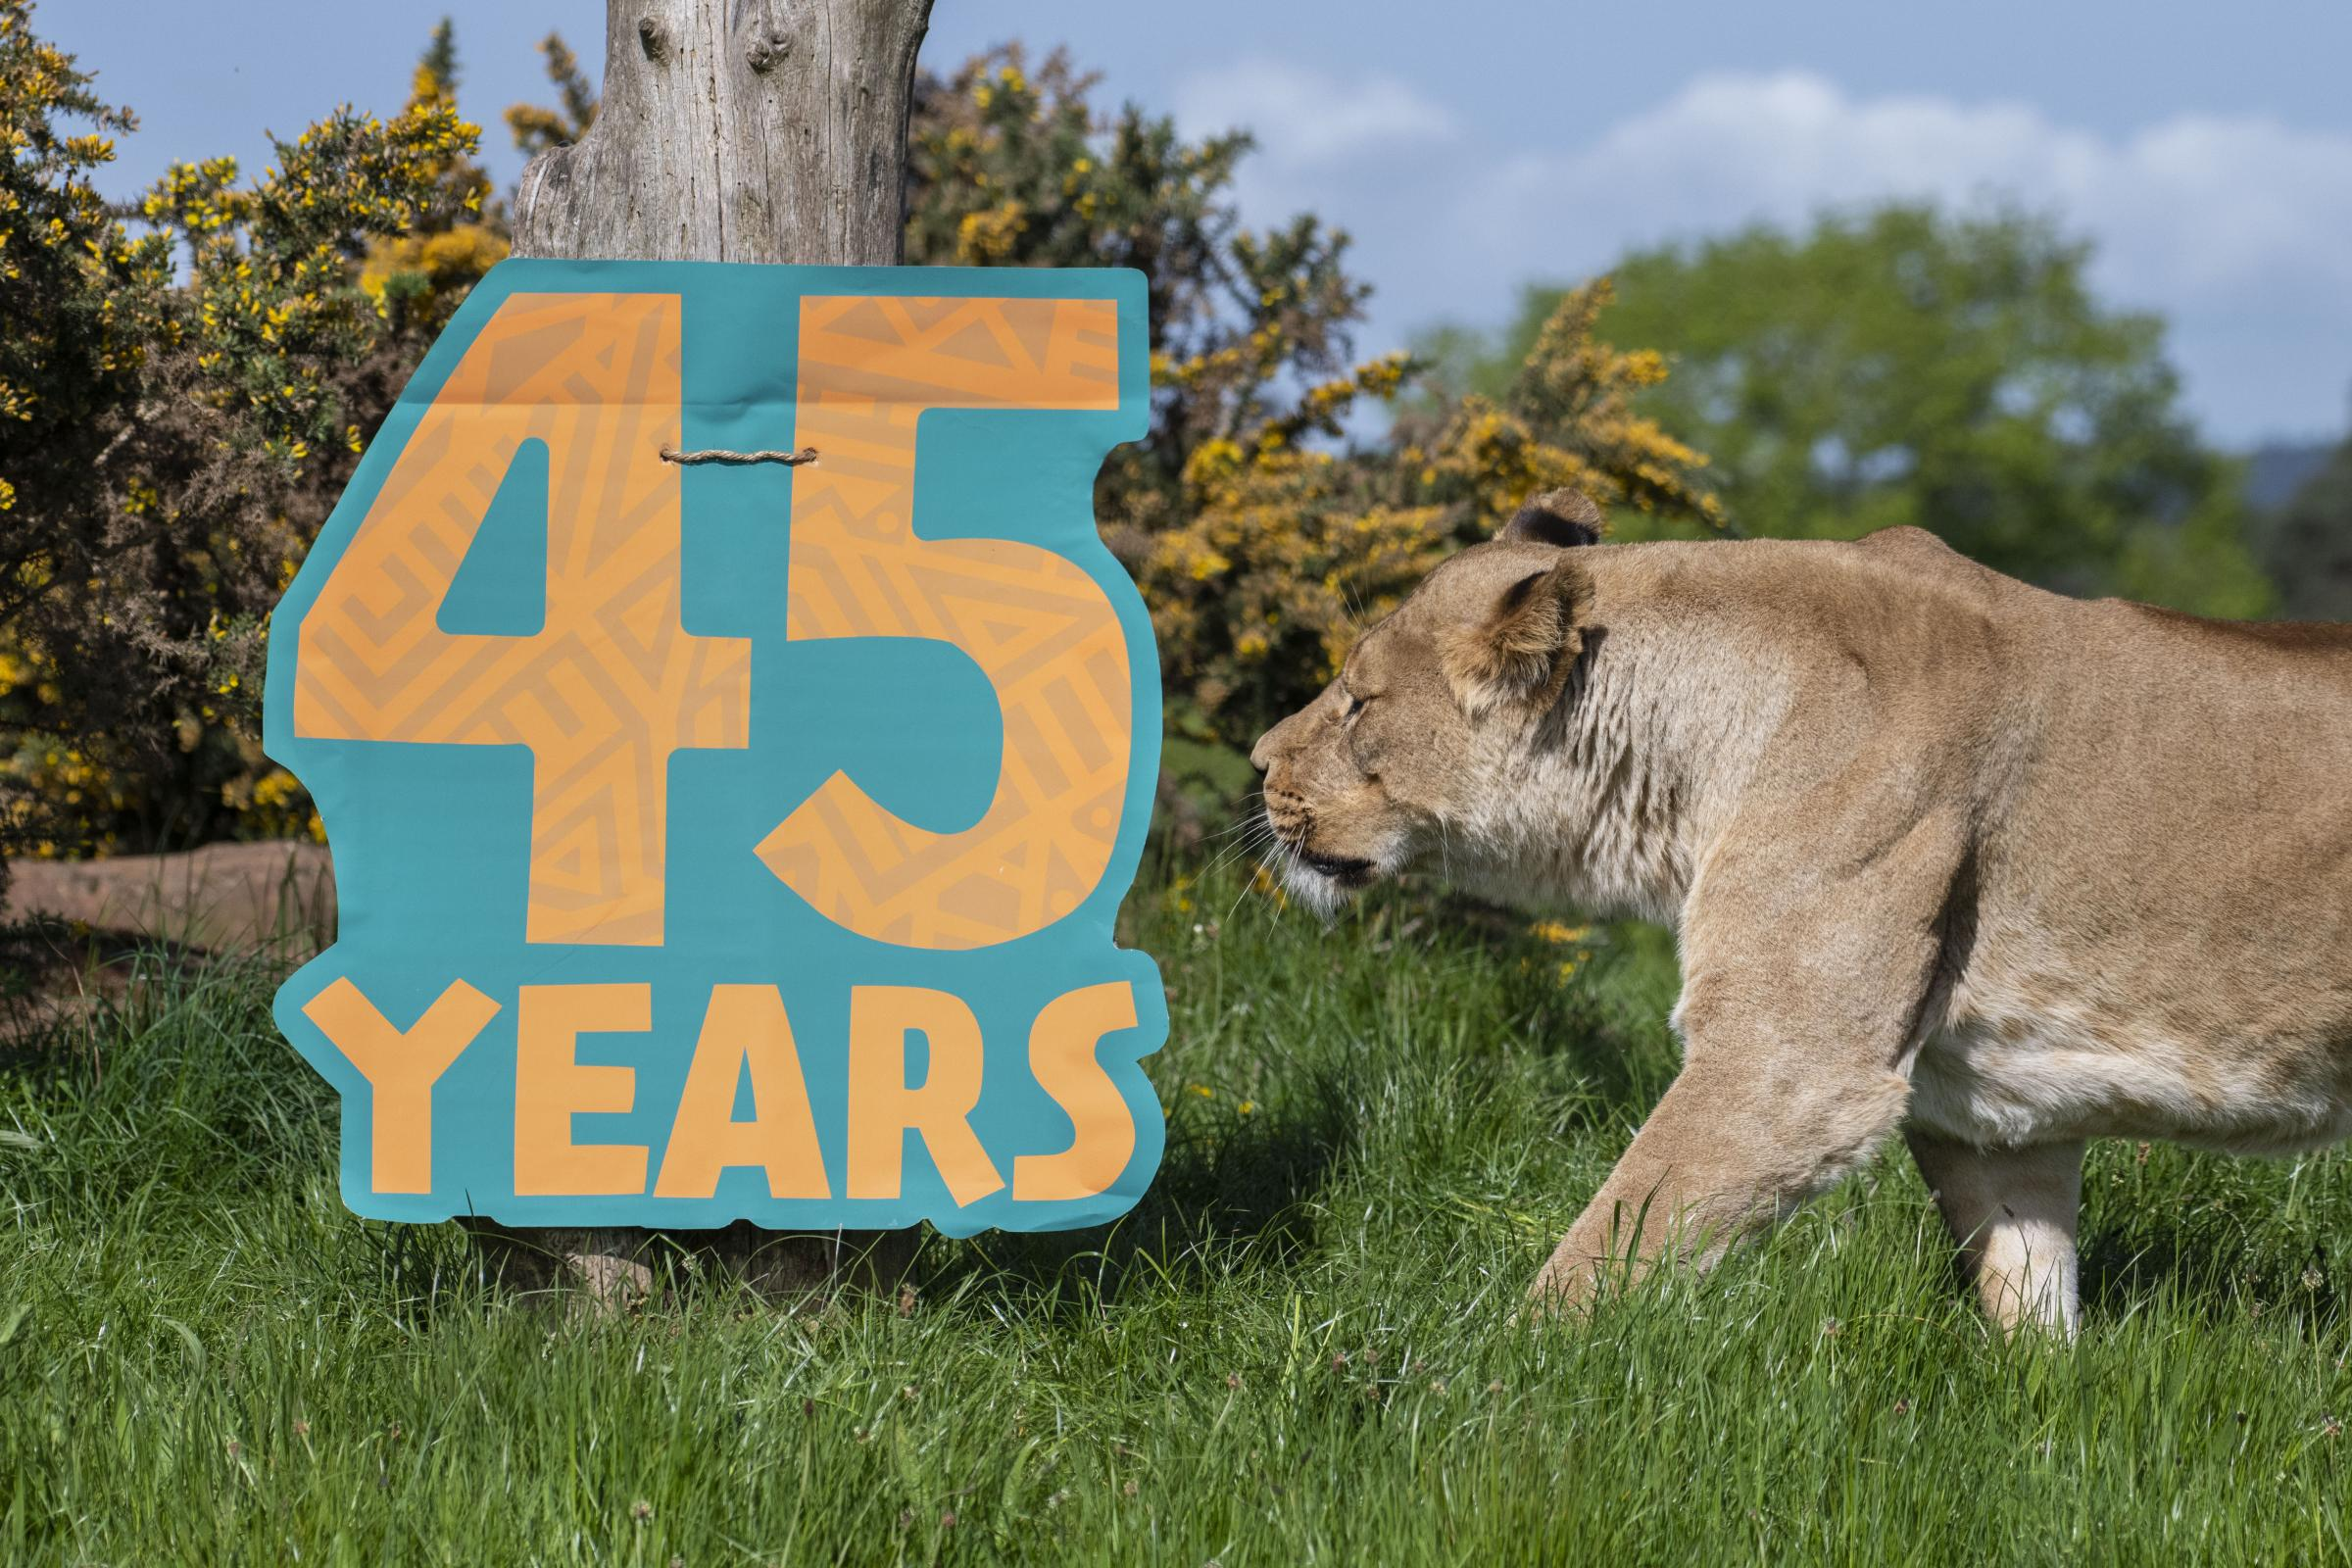 West Midland Safari Park are celebrating their 45th anniversary.